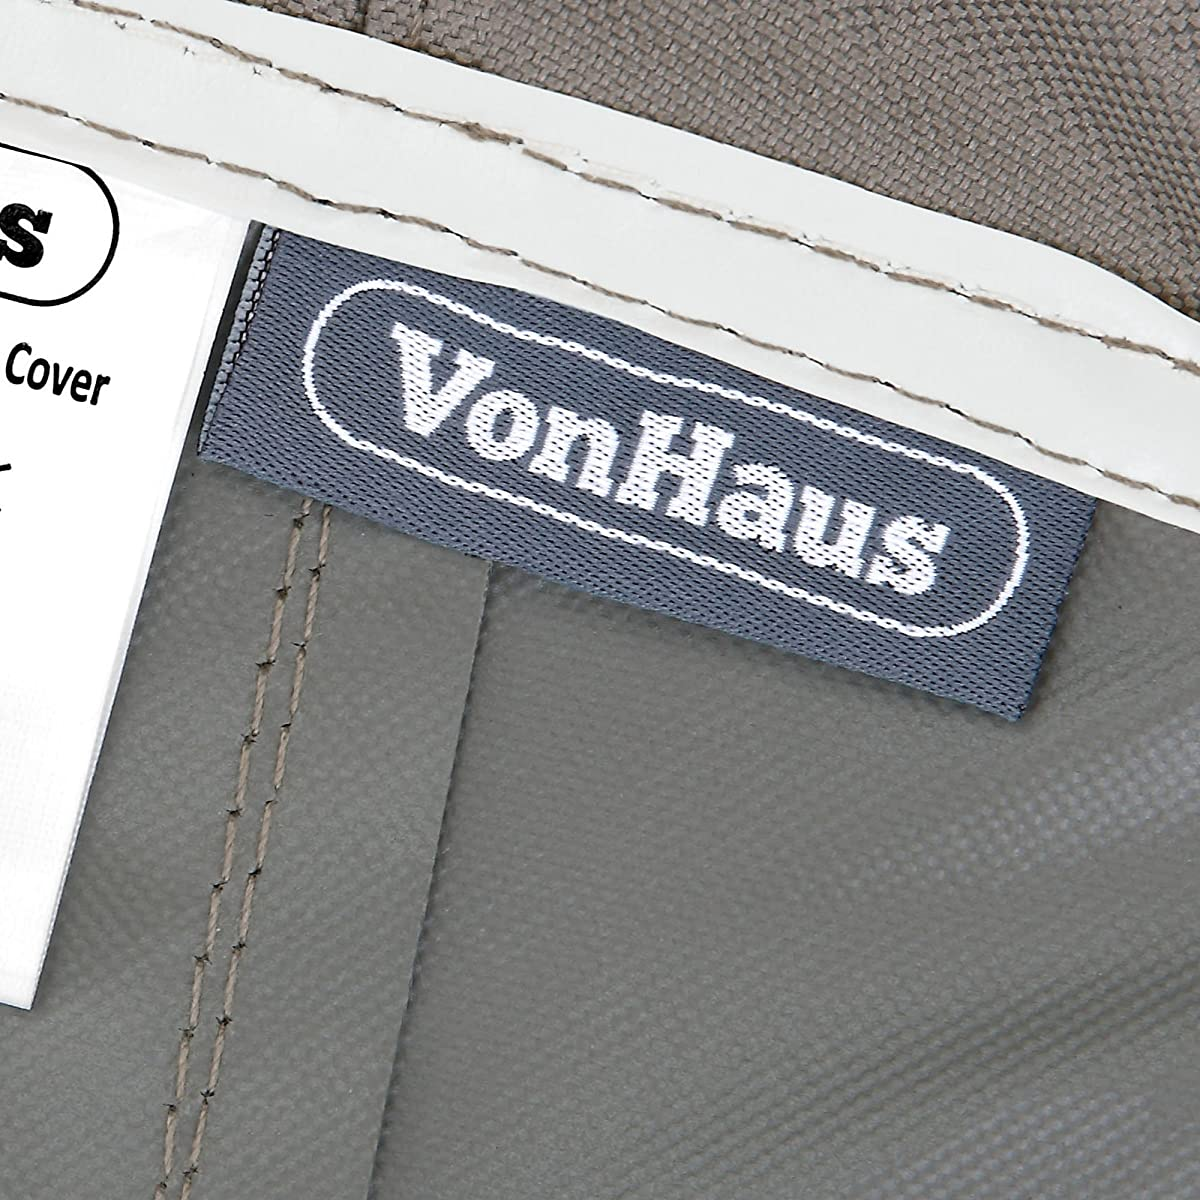 VonHaus Chaise Lounge Cover - 'The Storm Collection' Premium Heavy Duty Waterproof Outdoor Patio Furniture Protection - Slate Gray with Beige Trim - L80 x W36 x H13-33 inches